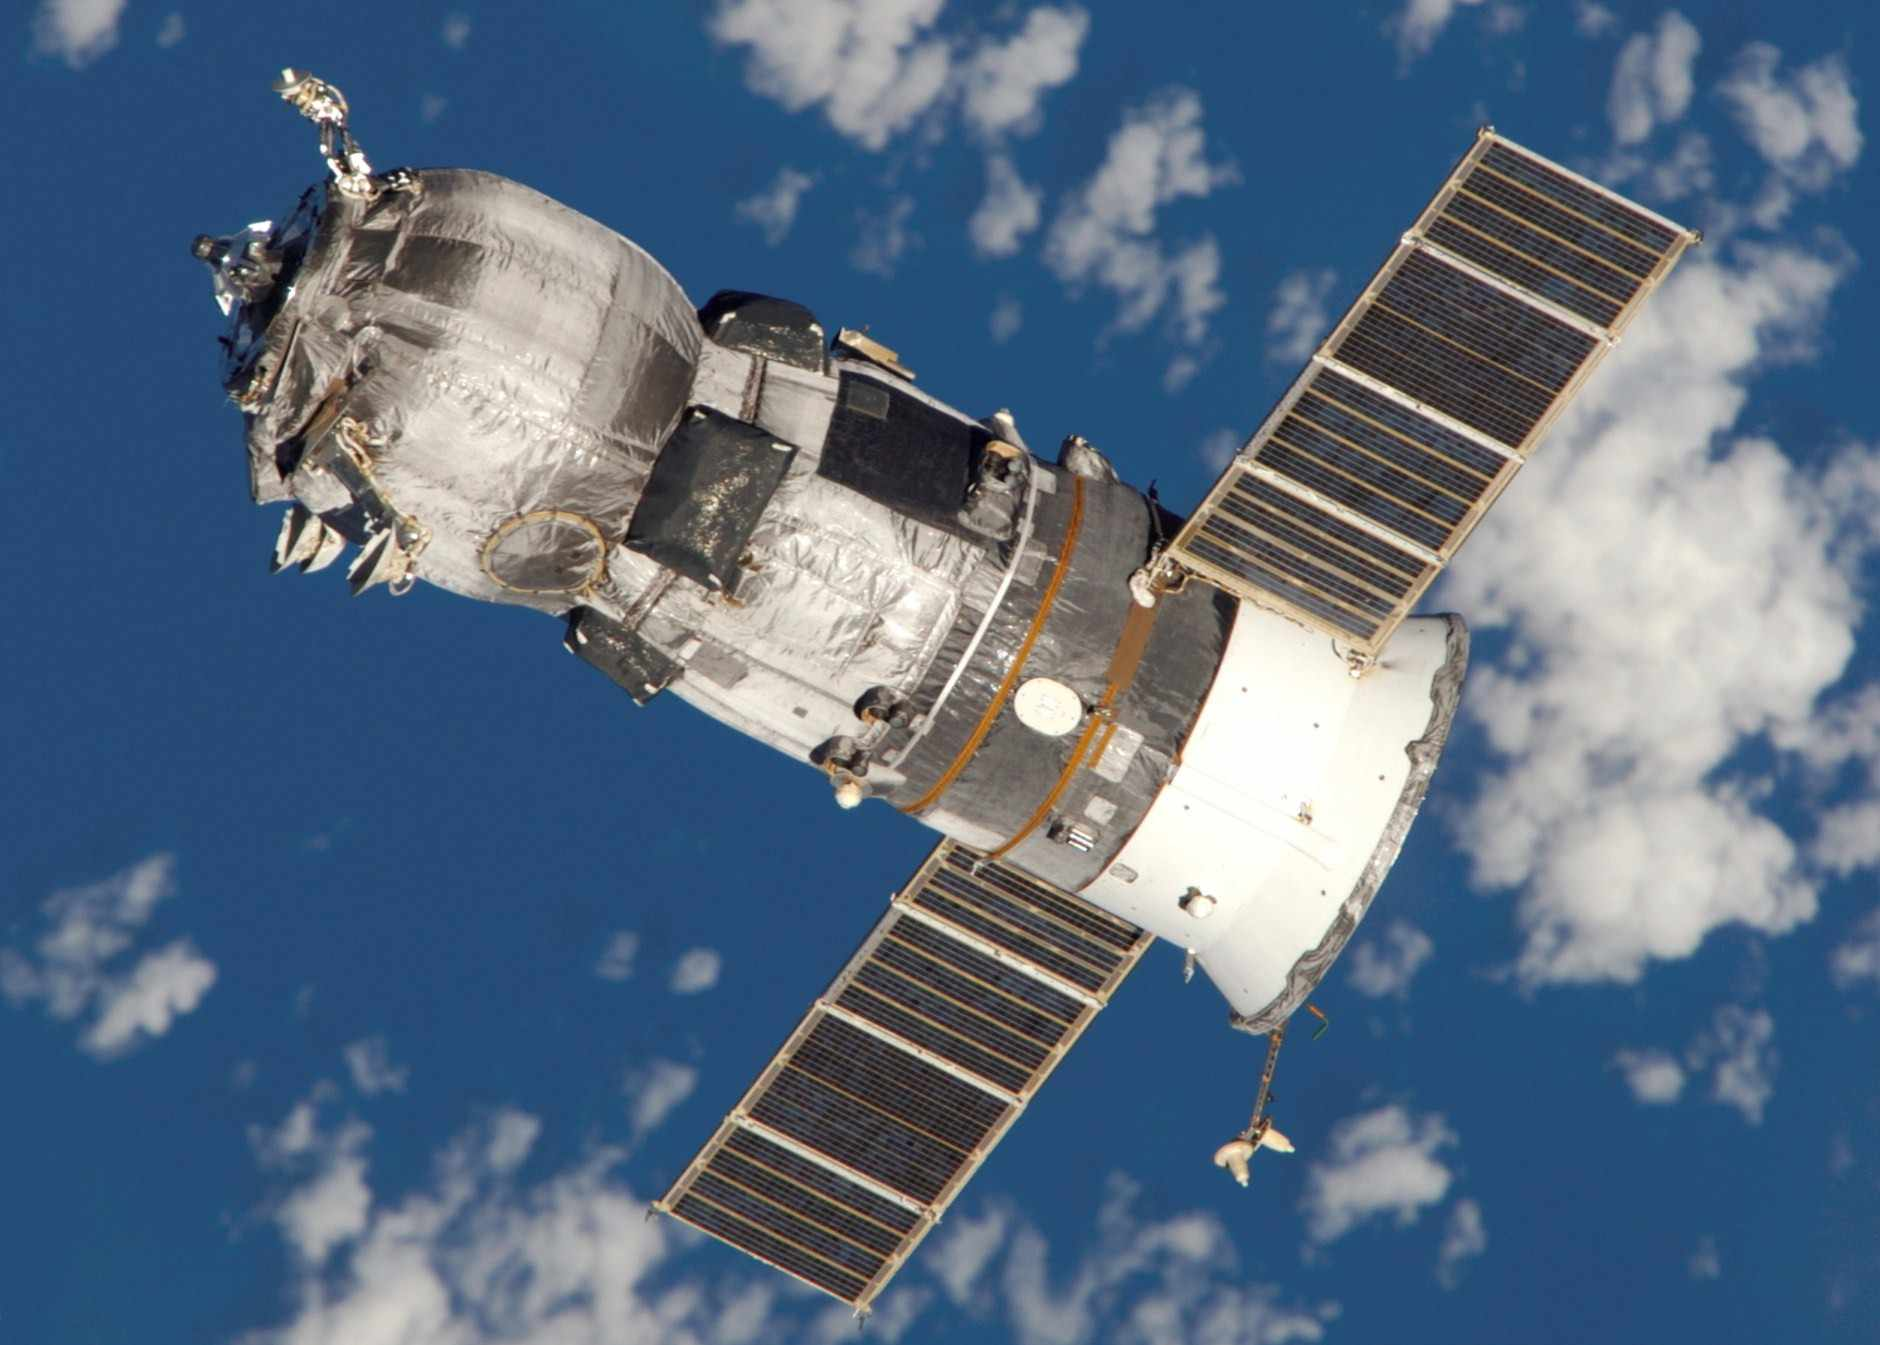 A Russian cargo spacecraft makes delivery in space